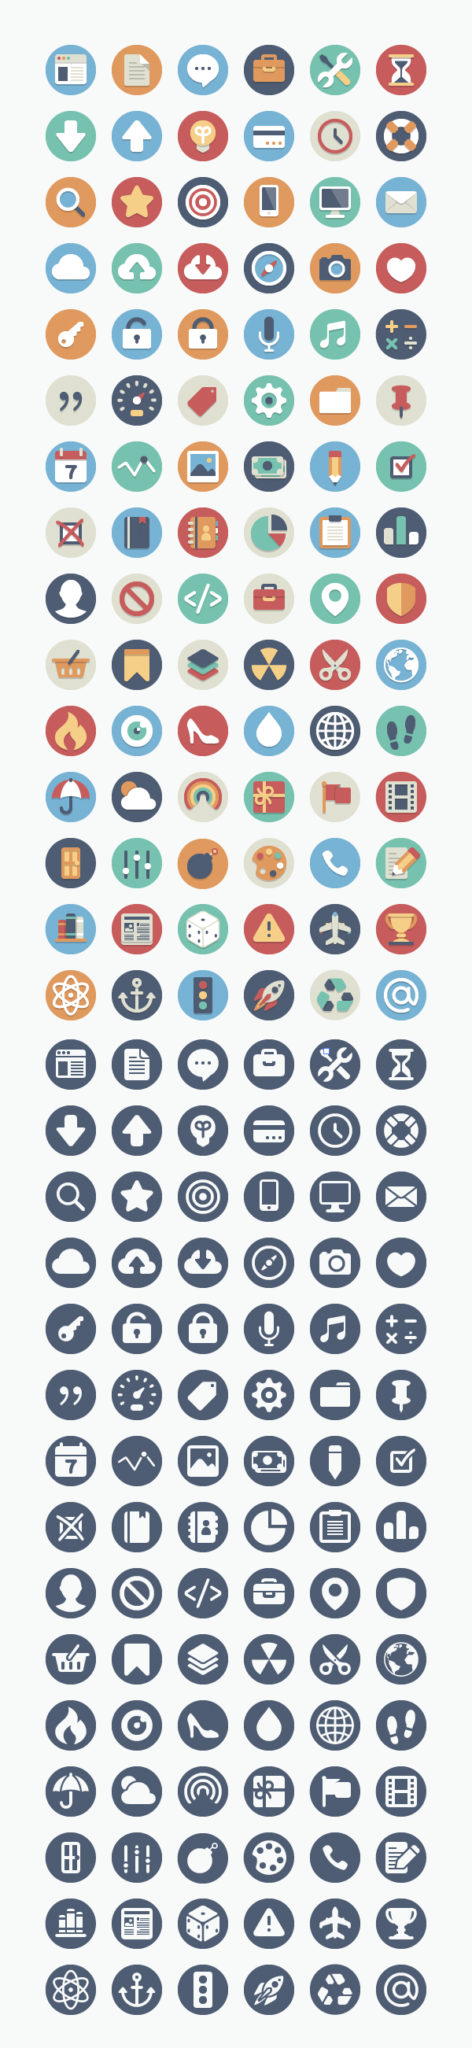 Free flat icons for your website or blog.